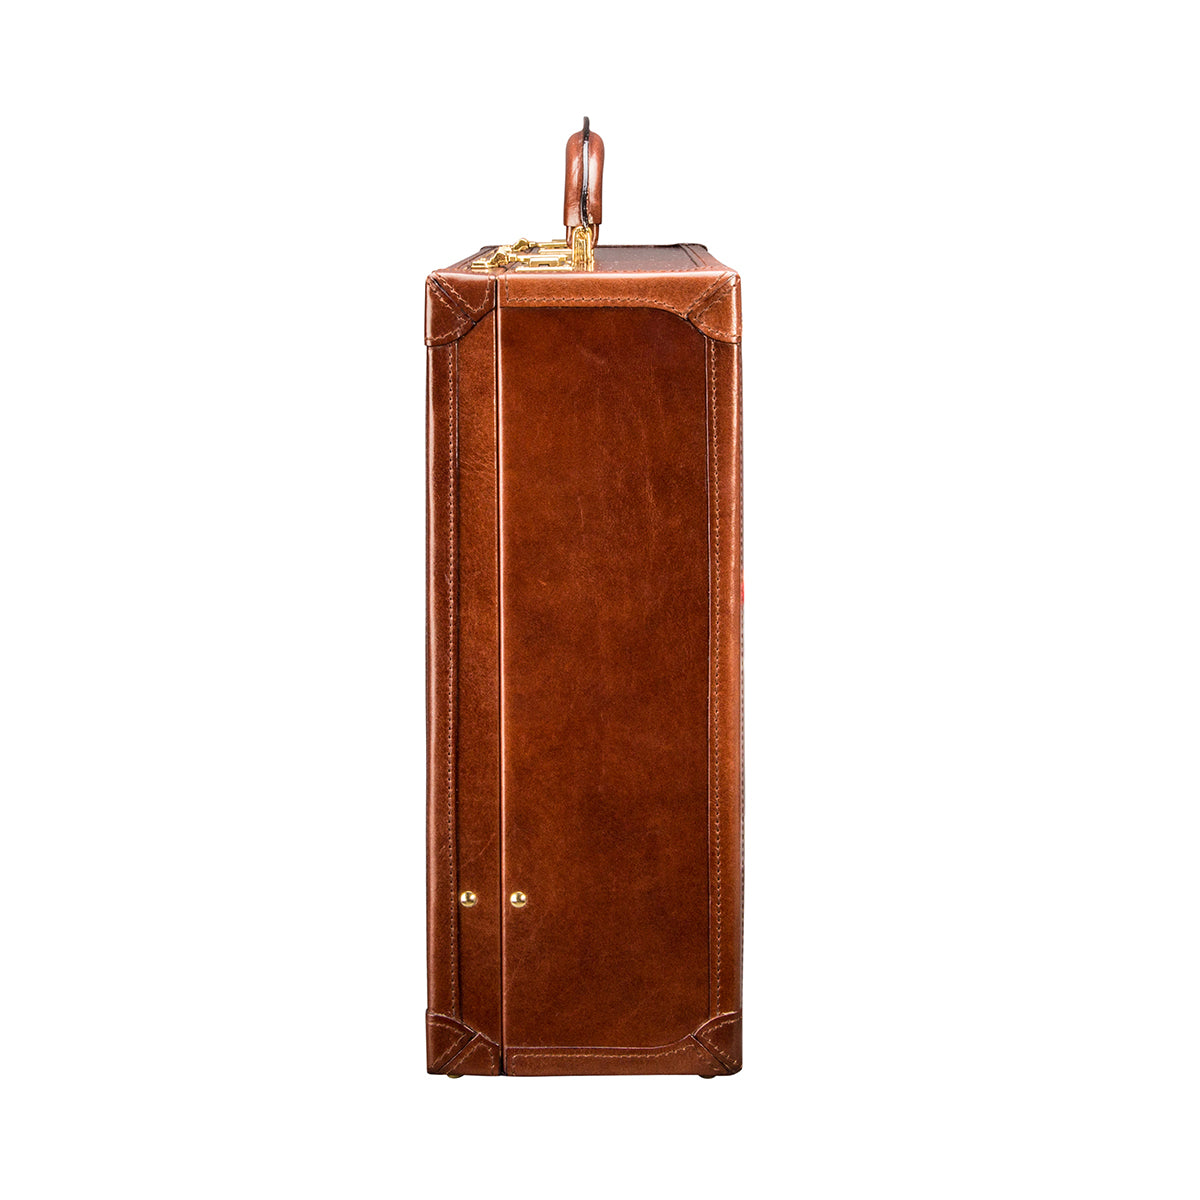 Image 3 of the 'Buroni' Chestnut Veg-Tanned Leather Business Attaché  Case